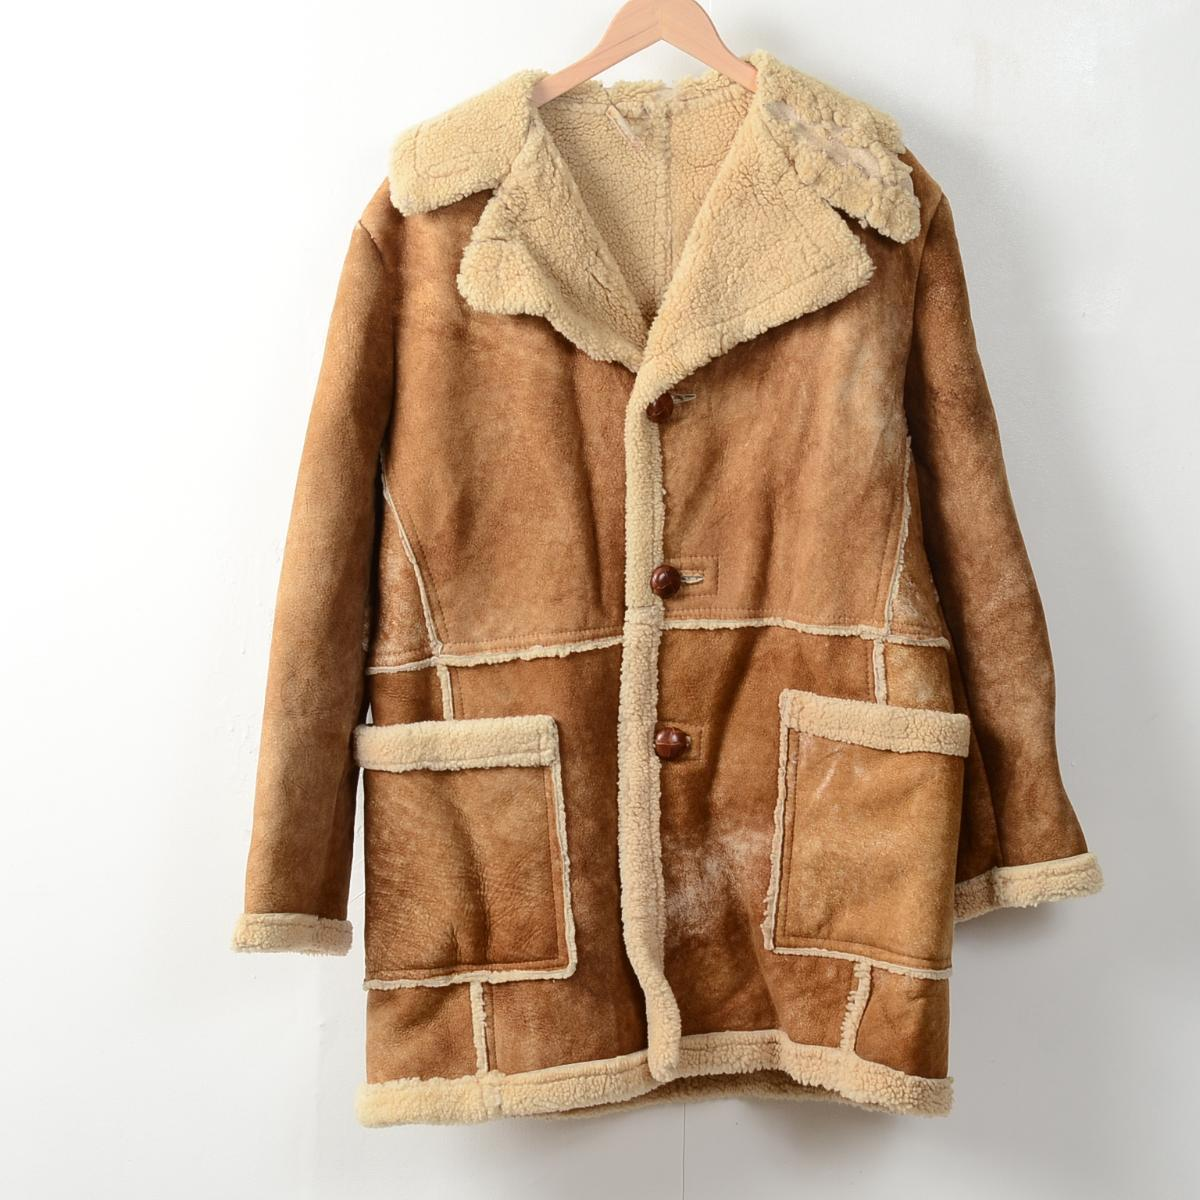 Mens Vintage Sheepskin Coat - Coat Nj